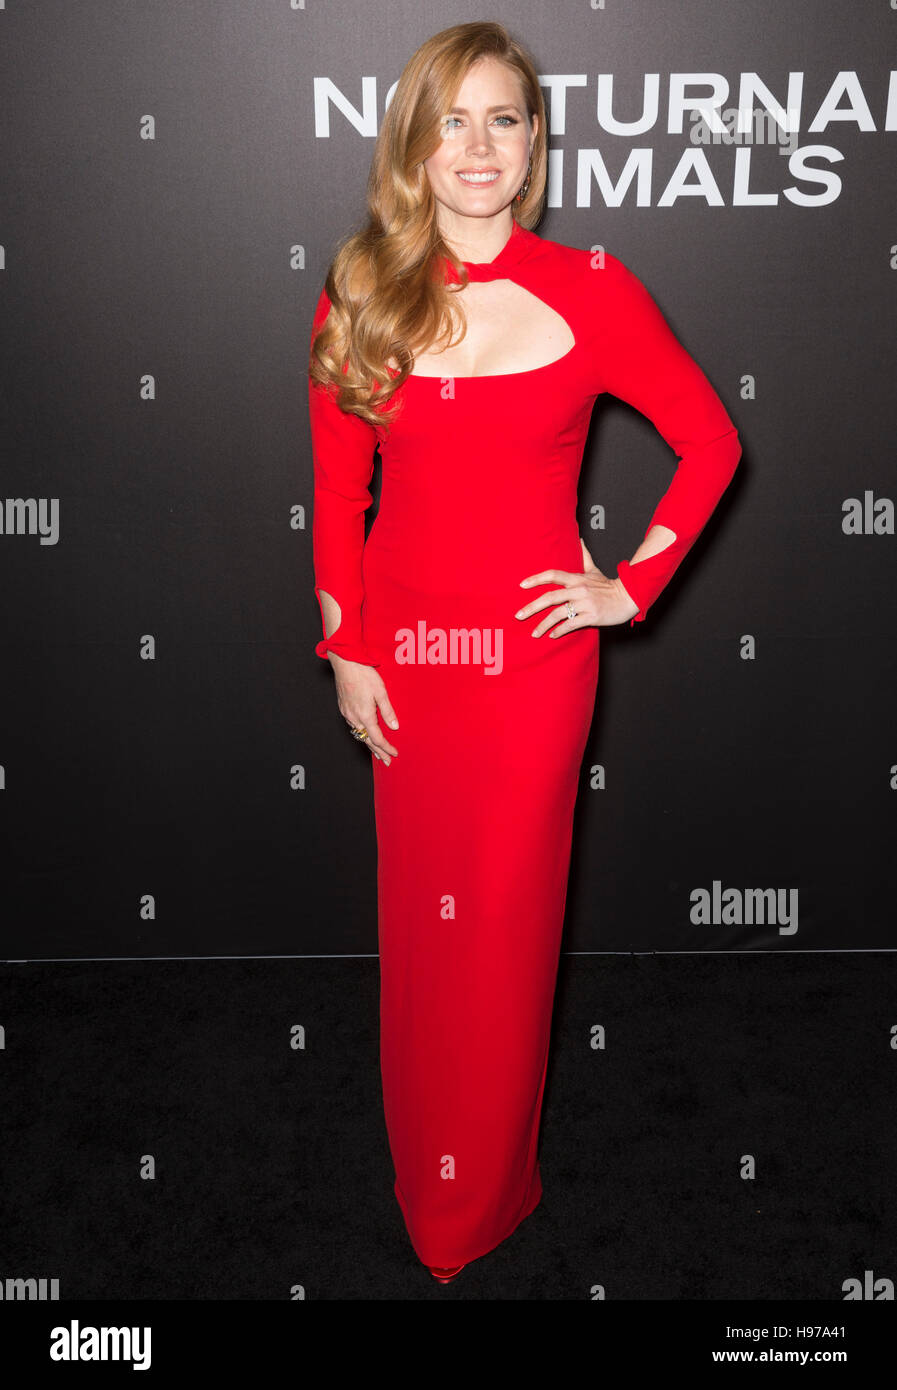 La ville de New York, USA - 17 novembre 2016 : l'actrice Amy Adams assiste à la 'animaux nocturnes' Photo Stock